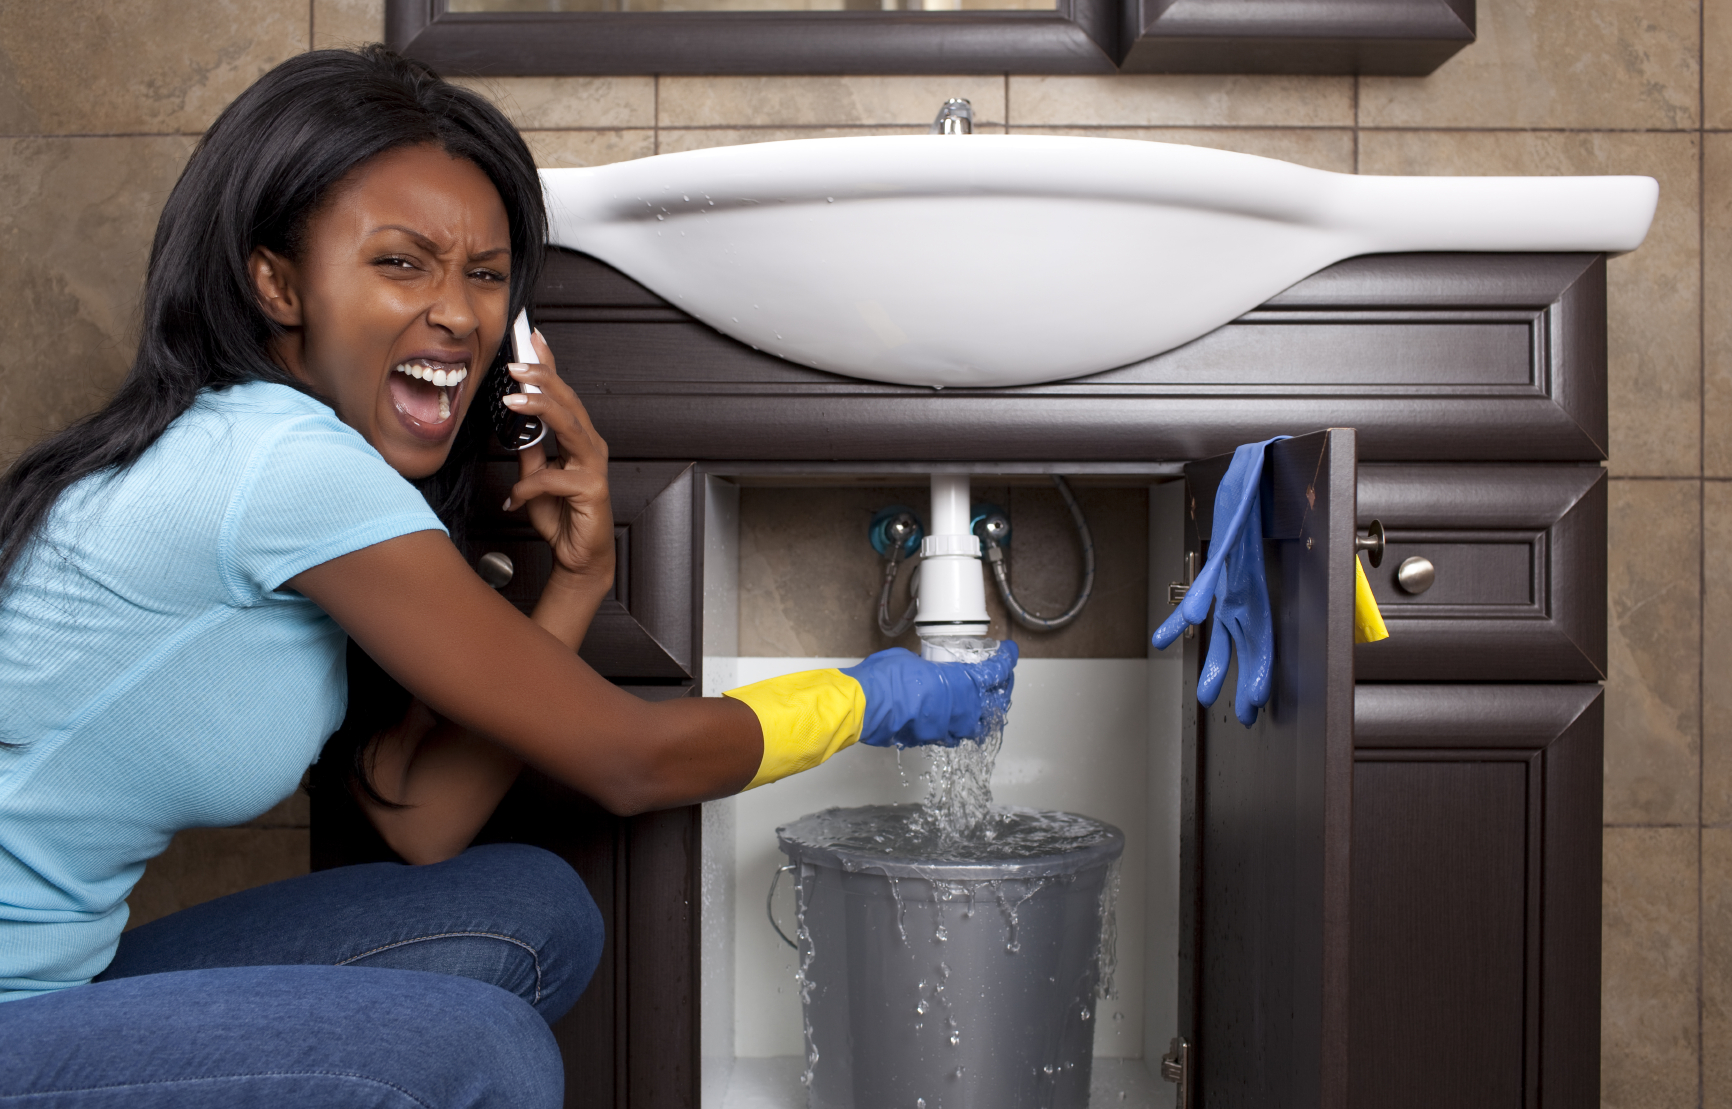 Get Quotes From An Affordable Plumber in Detroit Michigan